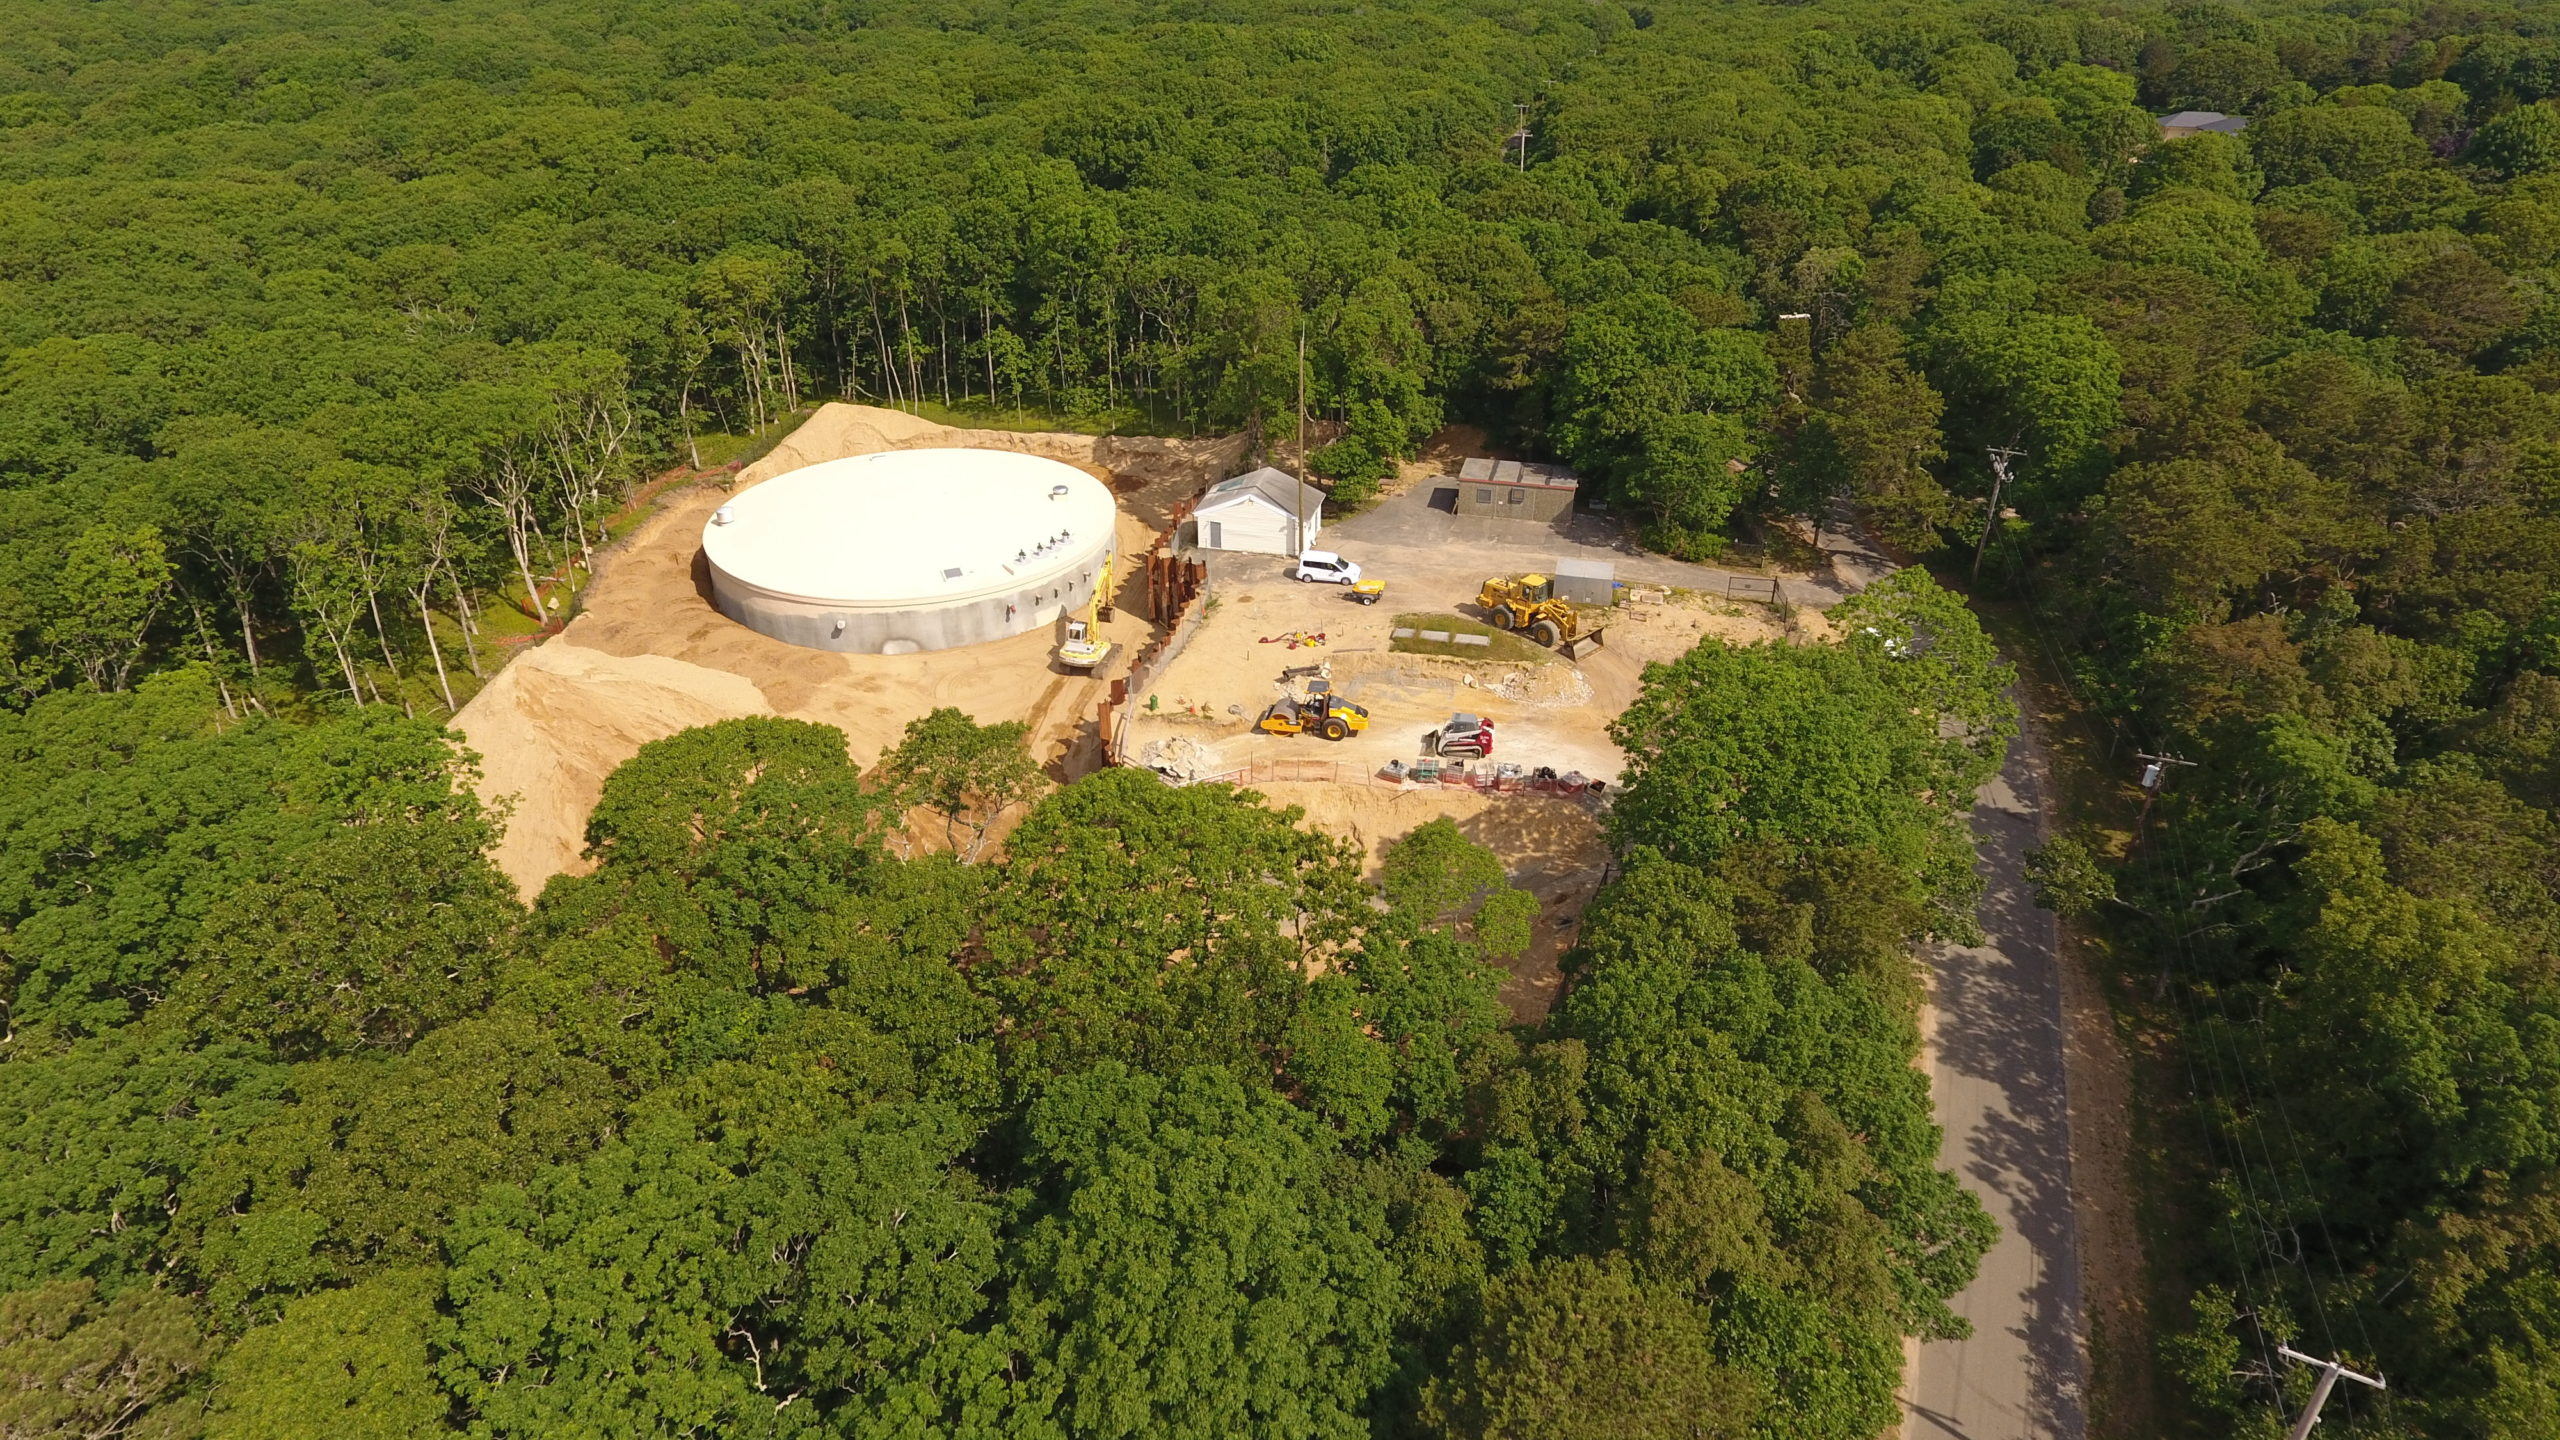 The Suffolk County Water Authority constructed a 900,000 water storage tank in the woods of northern Amagansett to help maintain water pressure during times of peak demand. The tank cost more than $2 million to construct, a cost that is shared by all SCWA customers countywide.